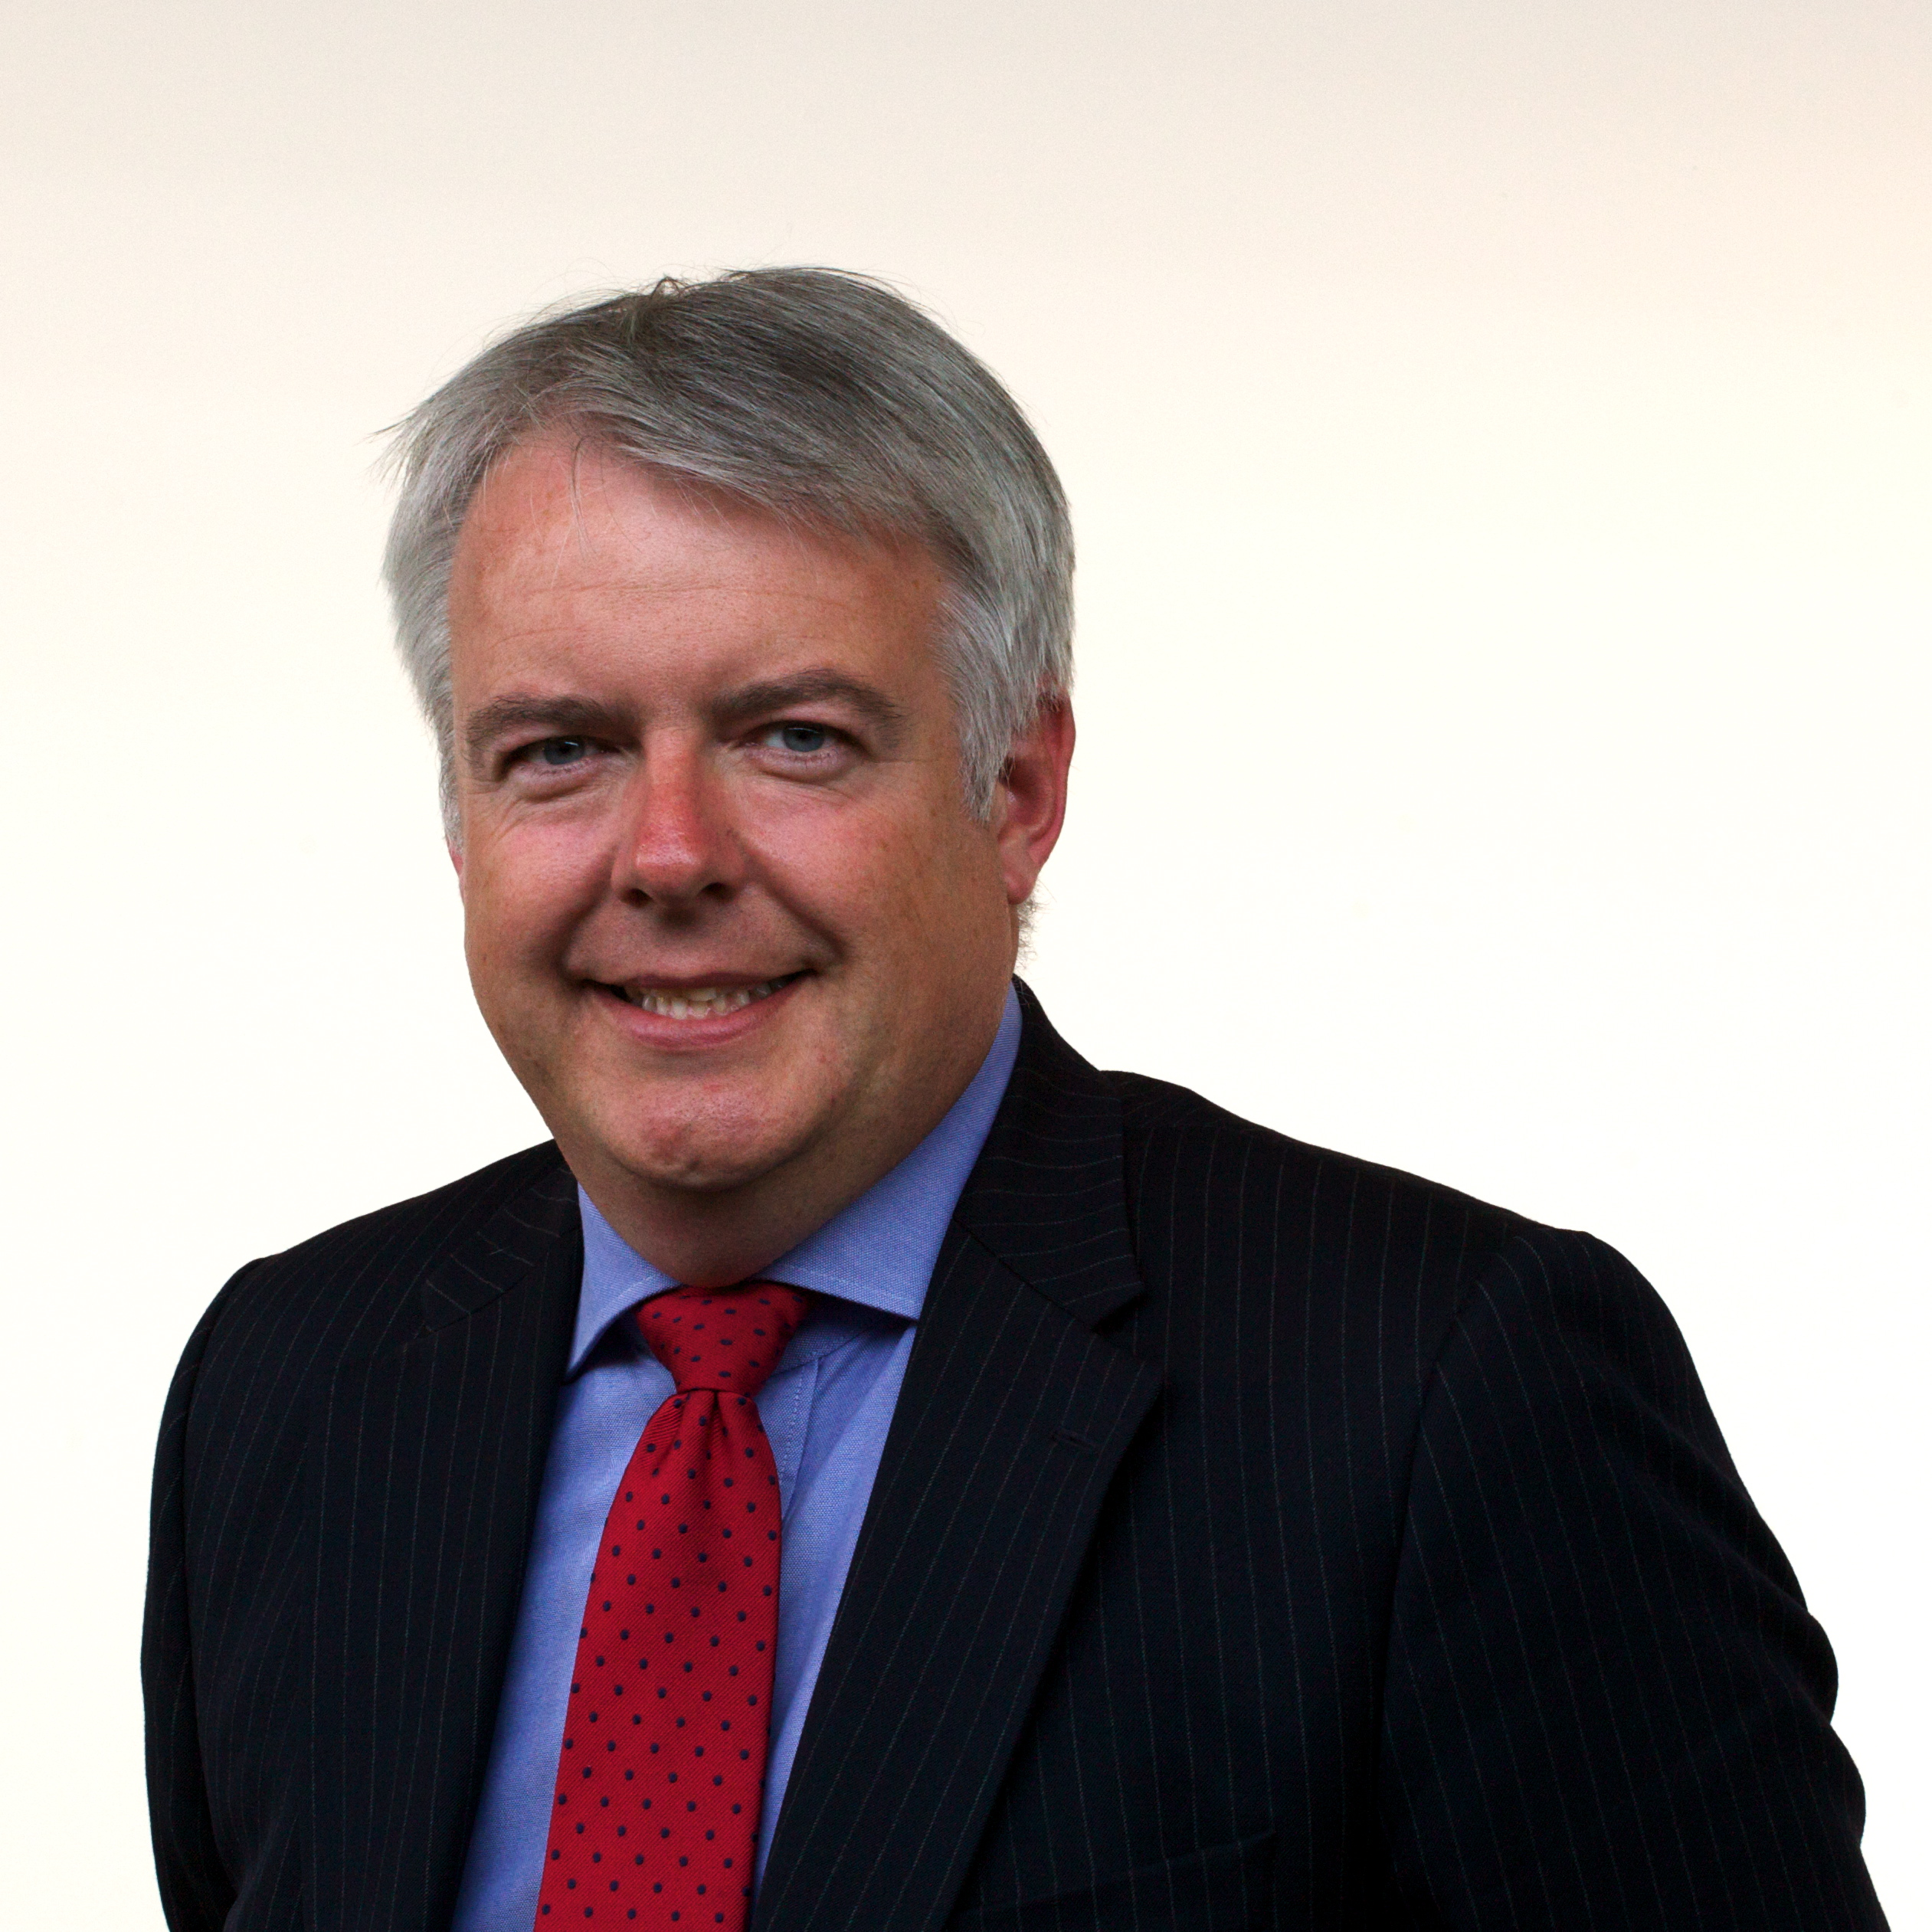 Carwyn Jones Carwyn Jones Wikipedia the free encyclopedia